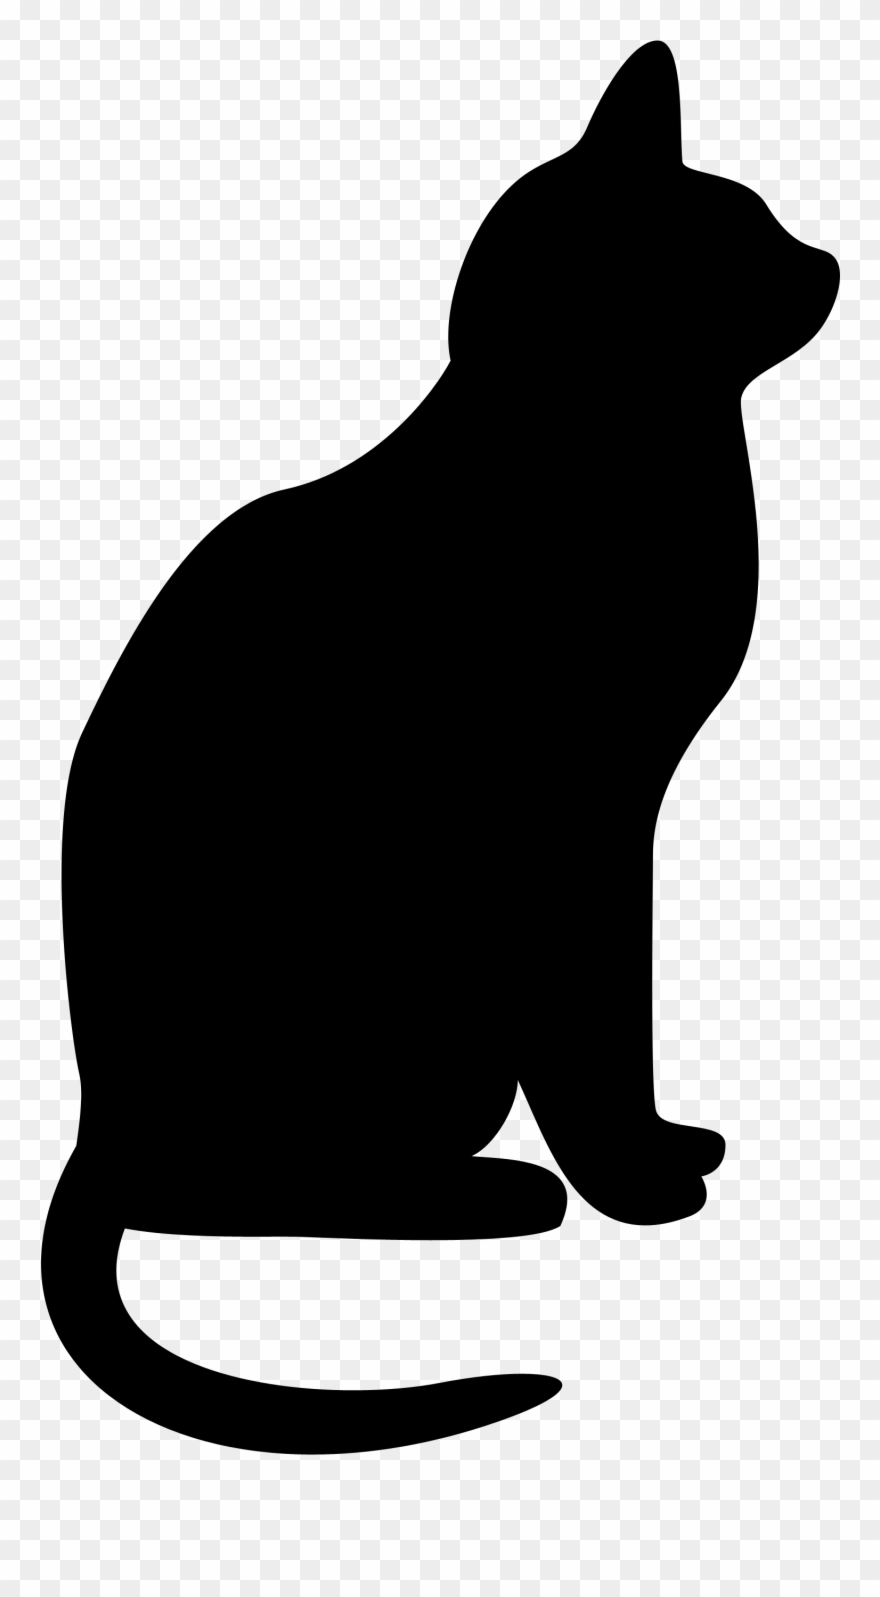 Rabid black cat | Public domain vectors